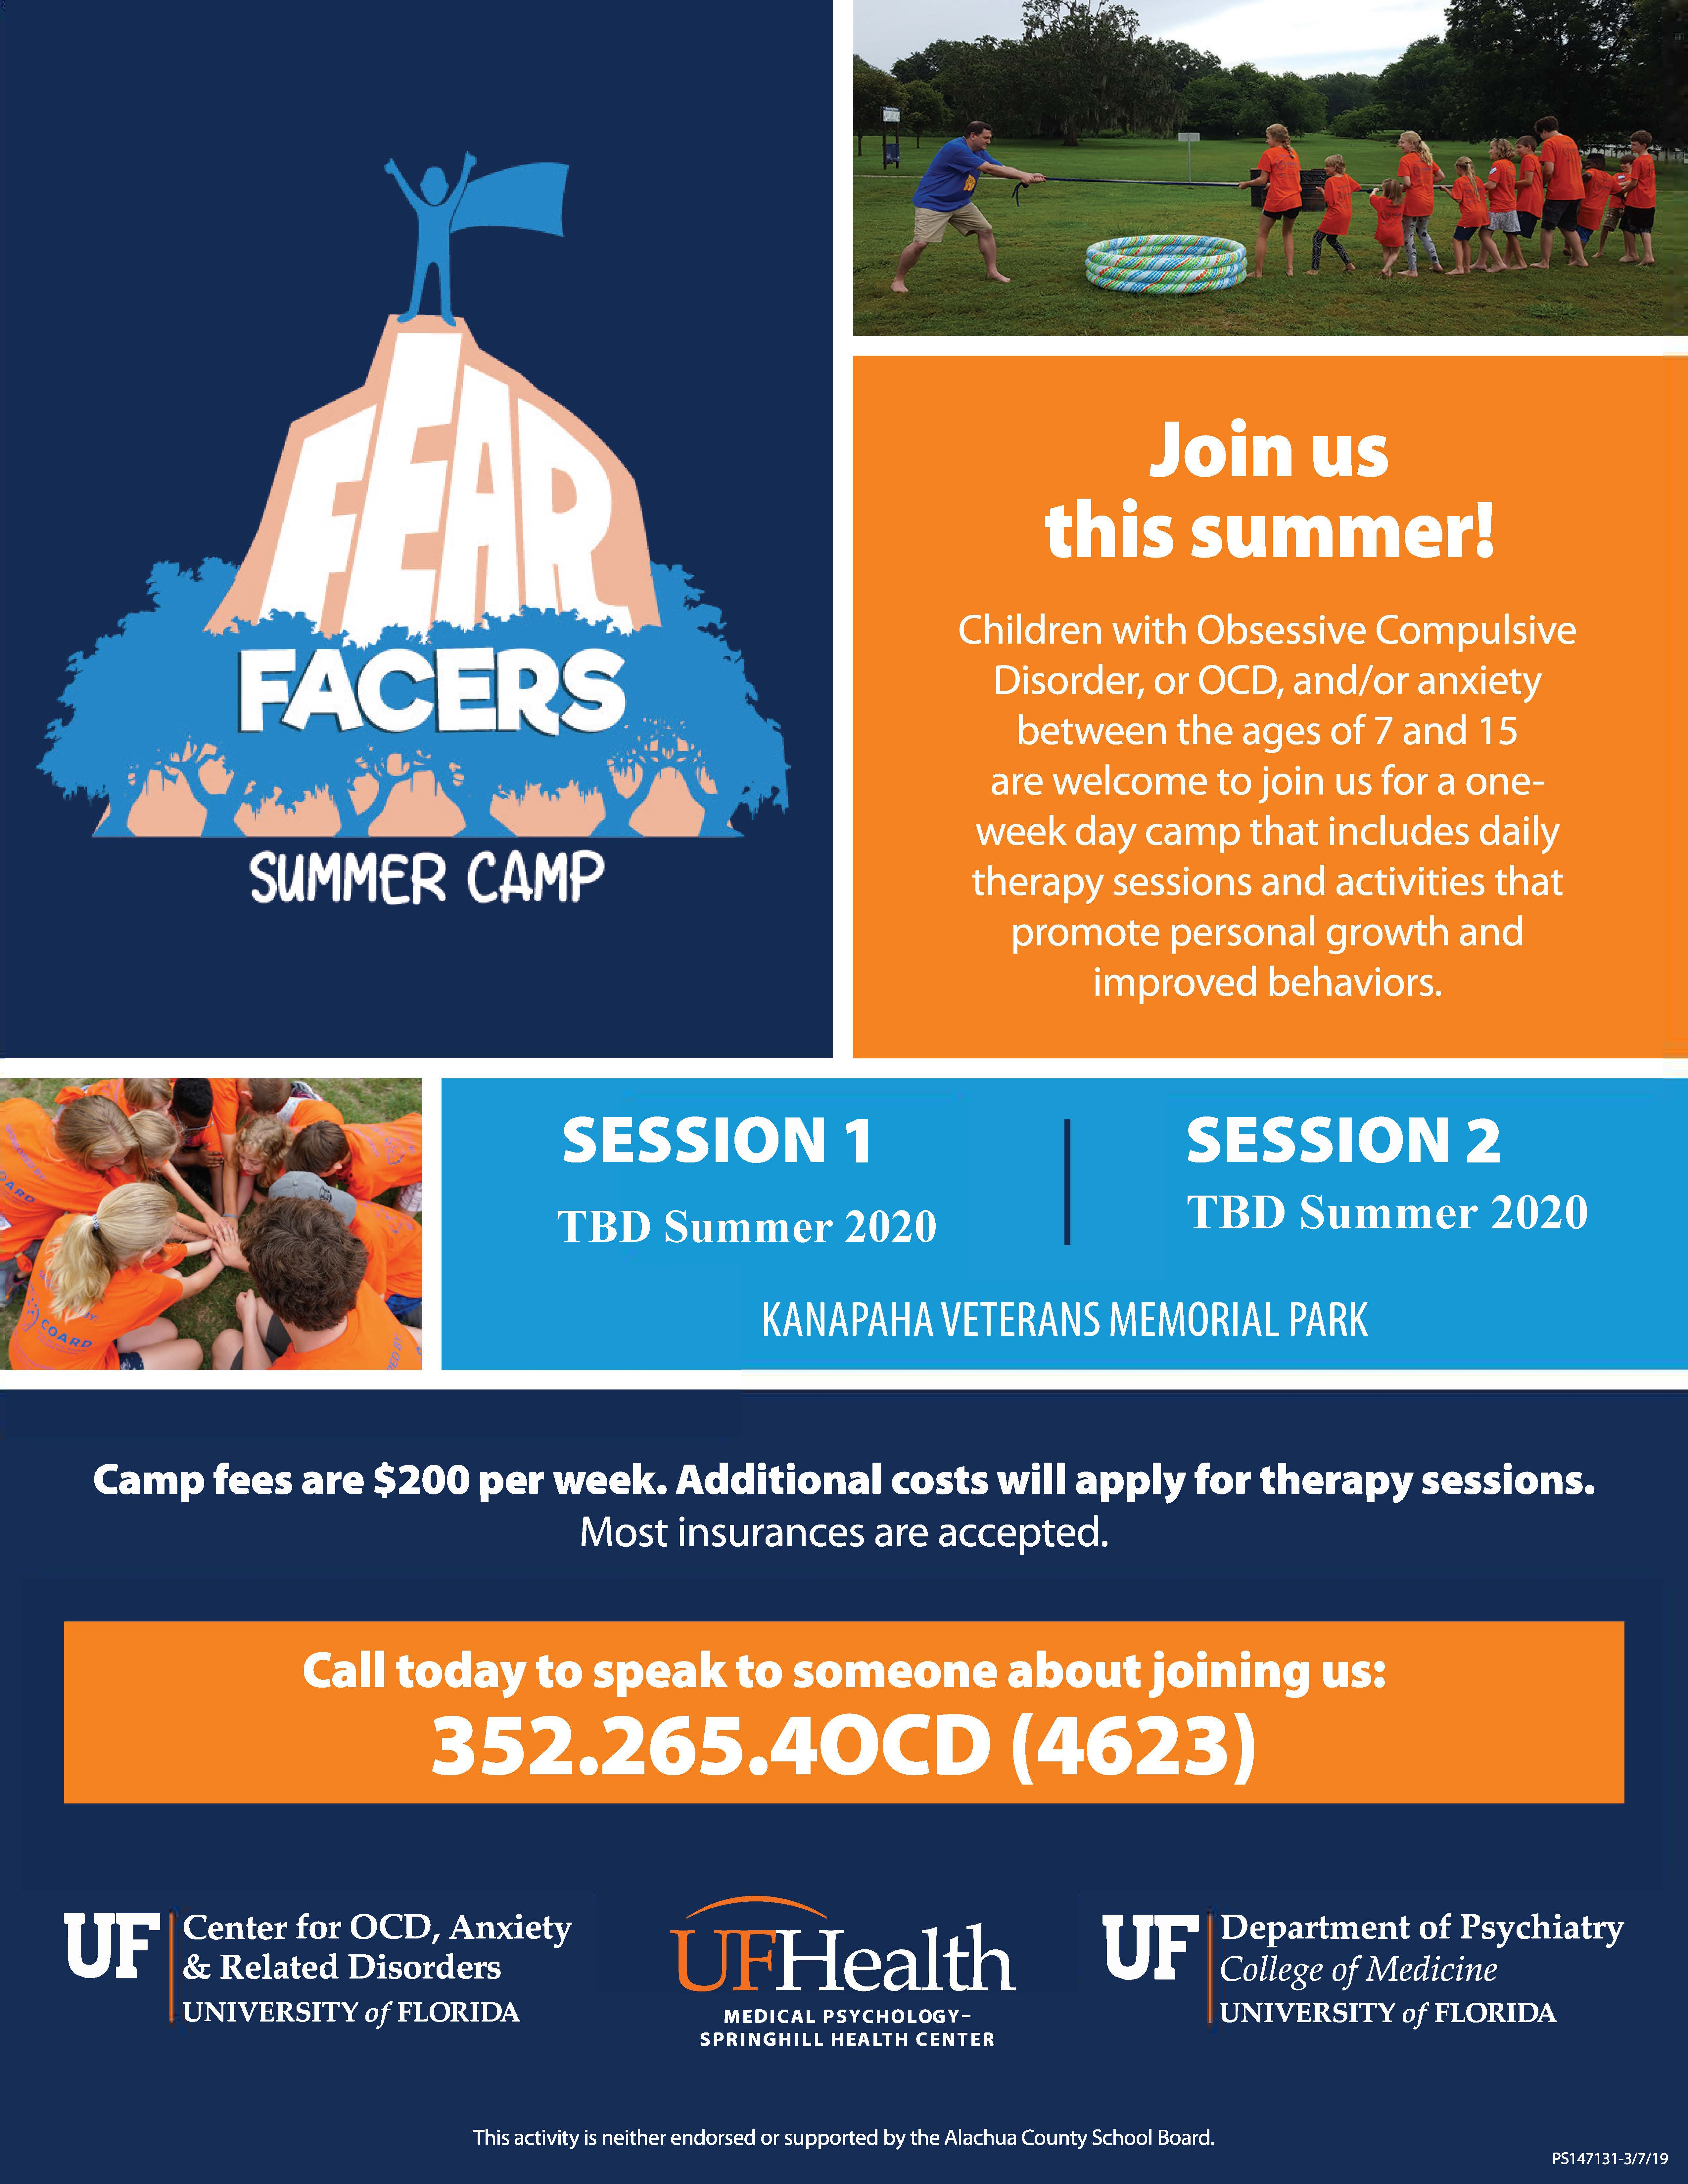 Fear Facers Camp » Center for OCD, Anxiety, & Related